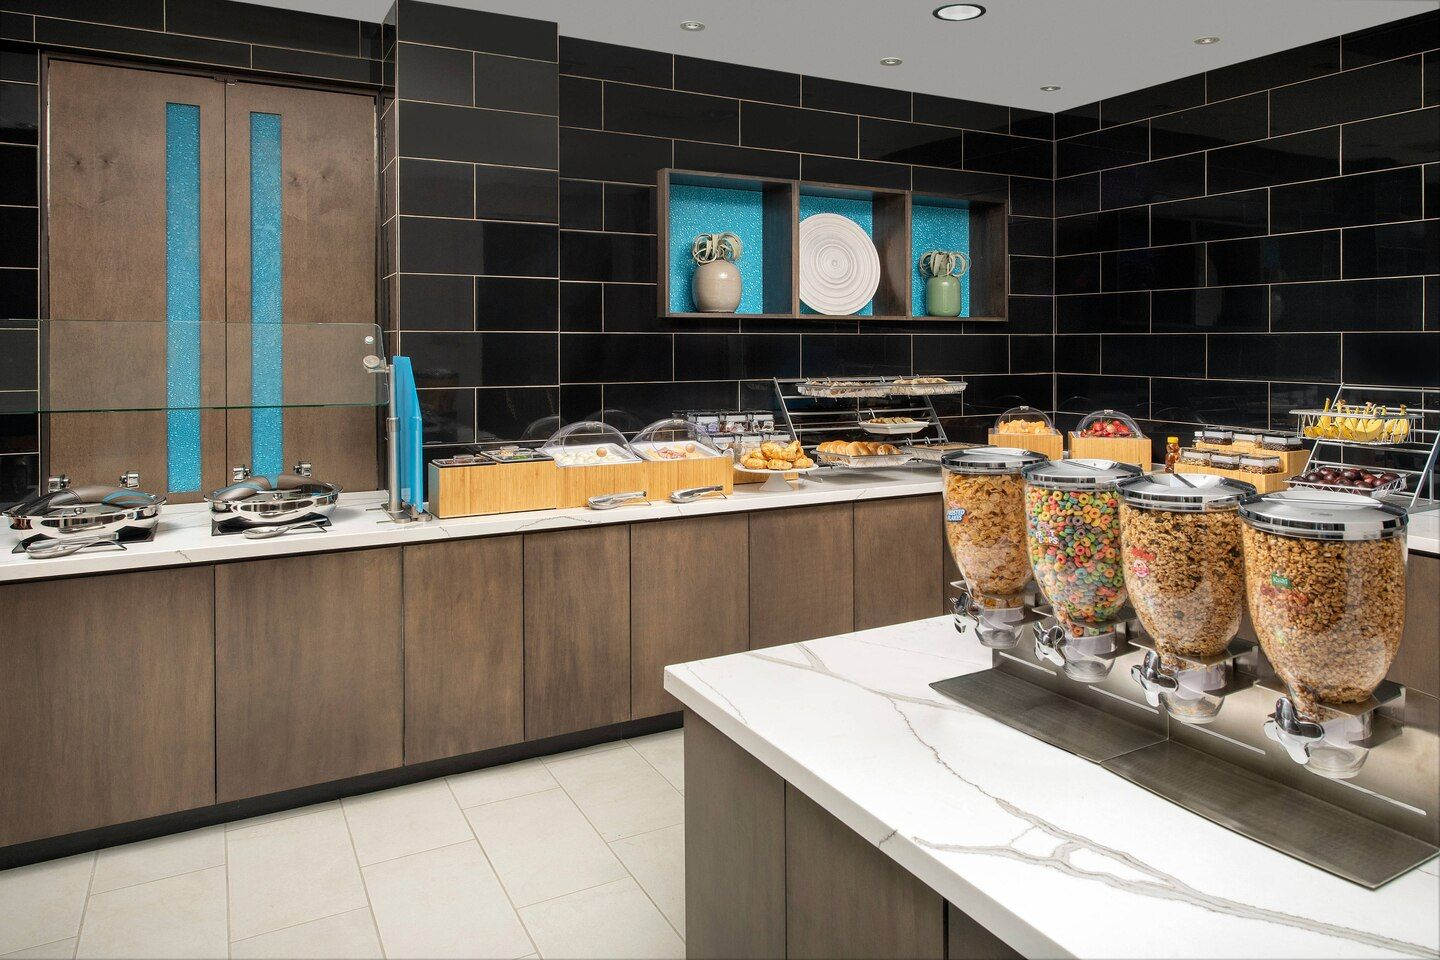 Springhill Suites Breakfast Buffet